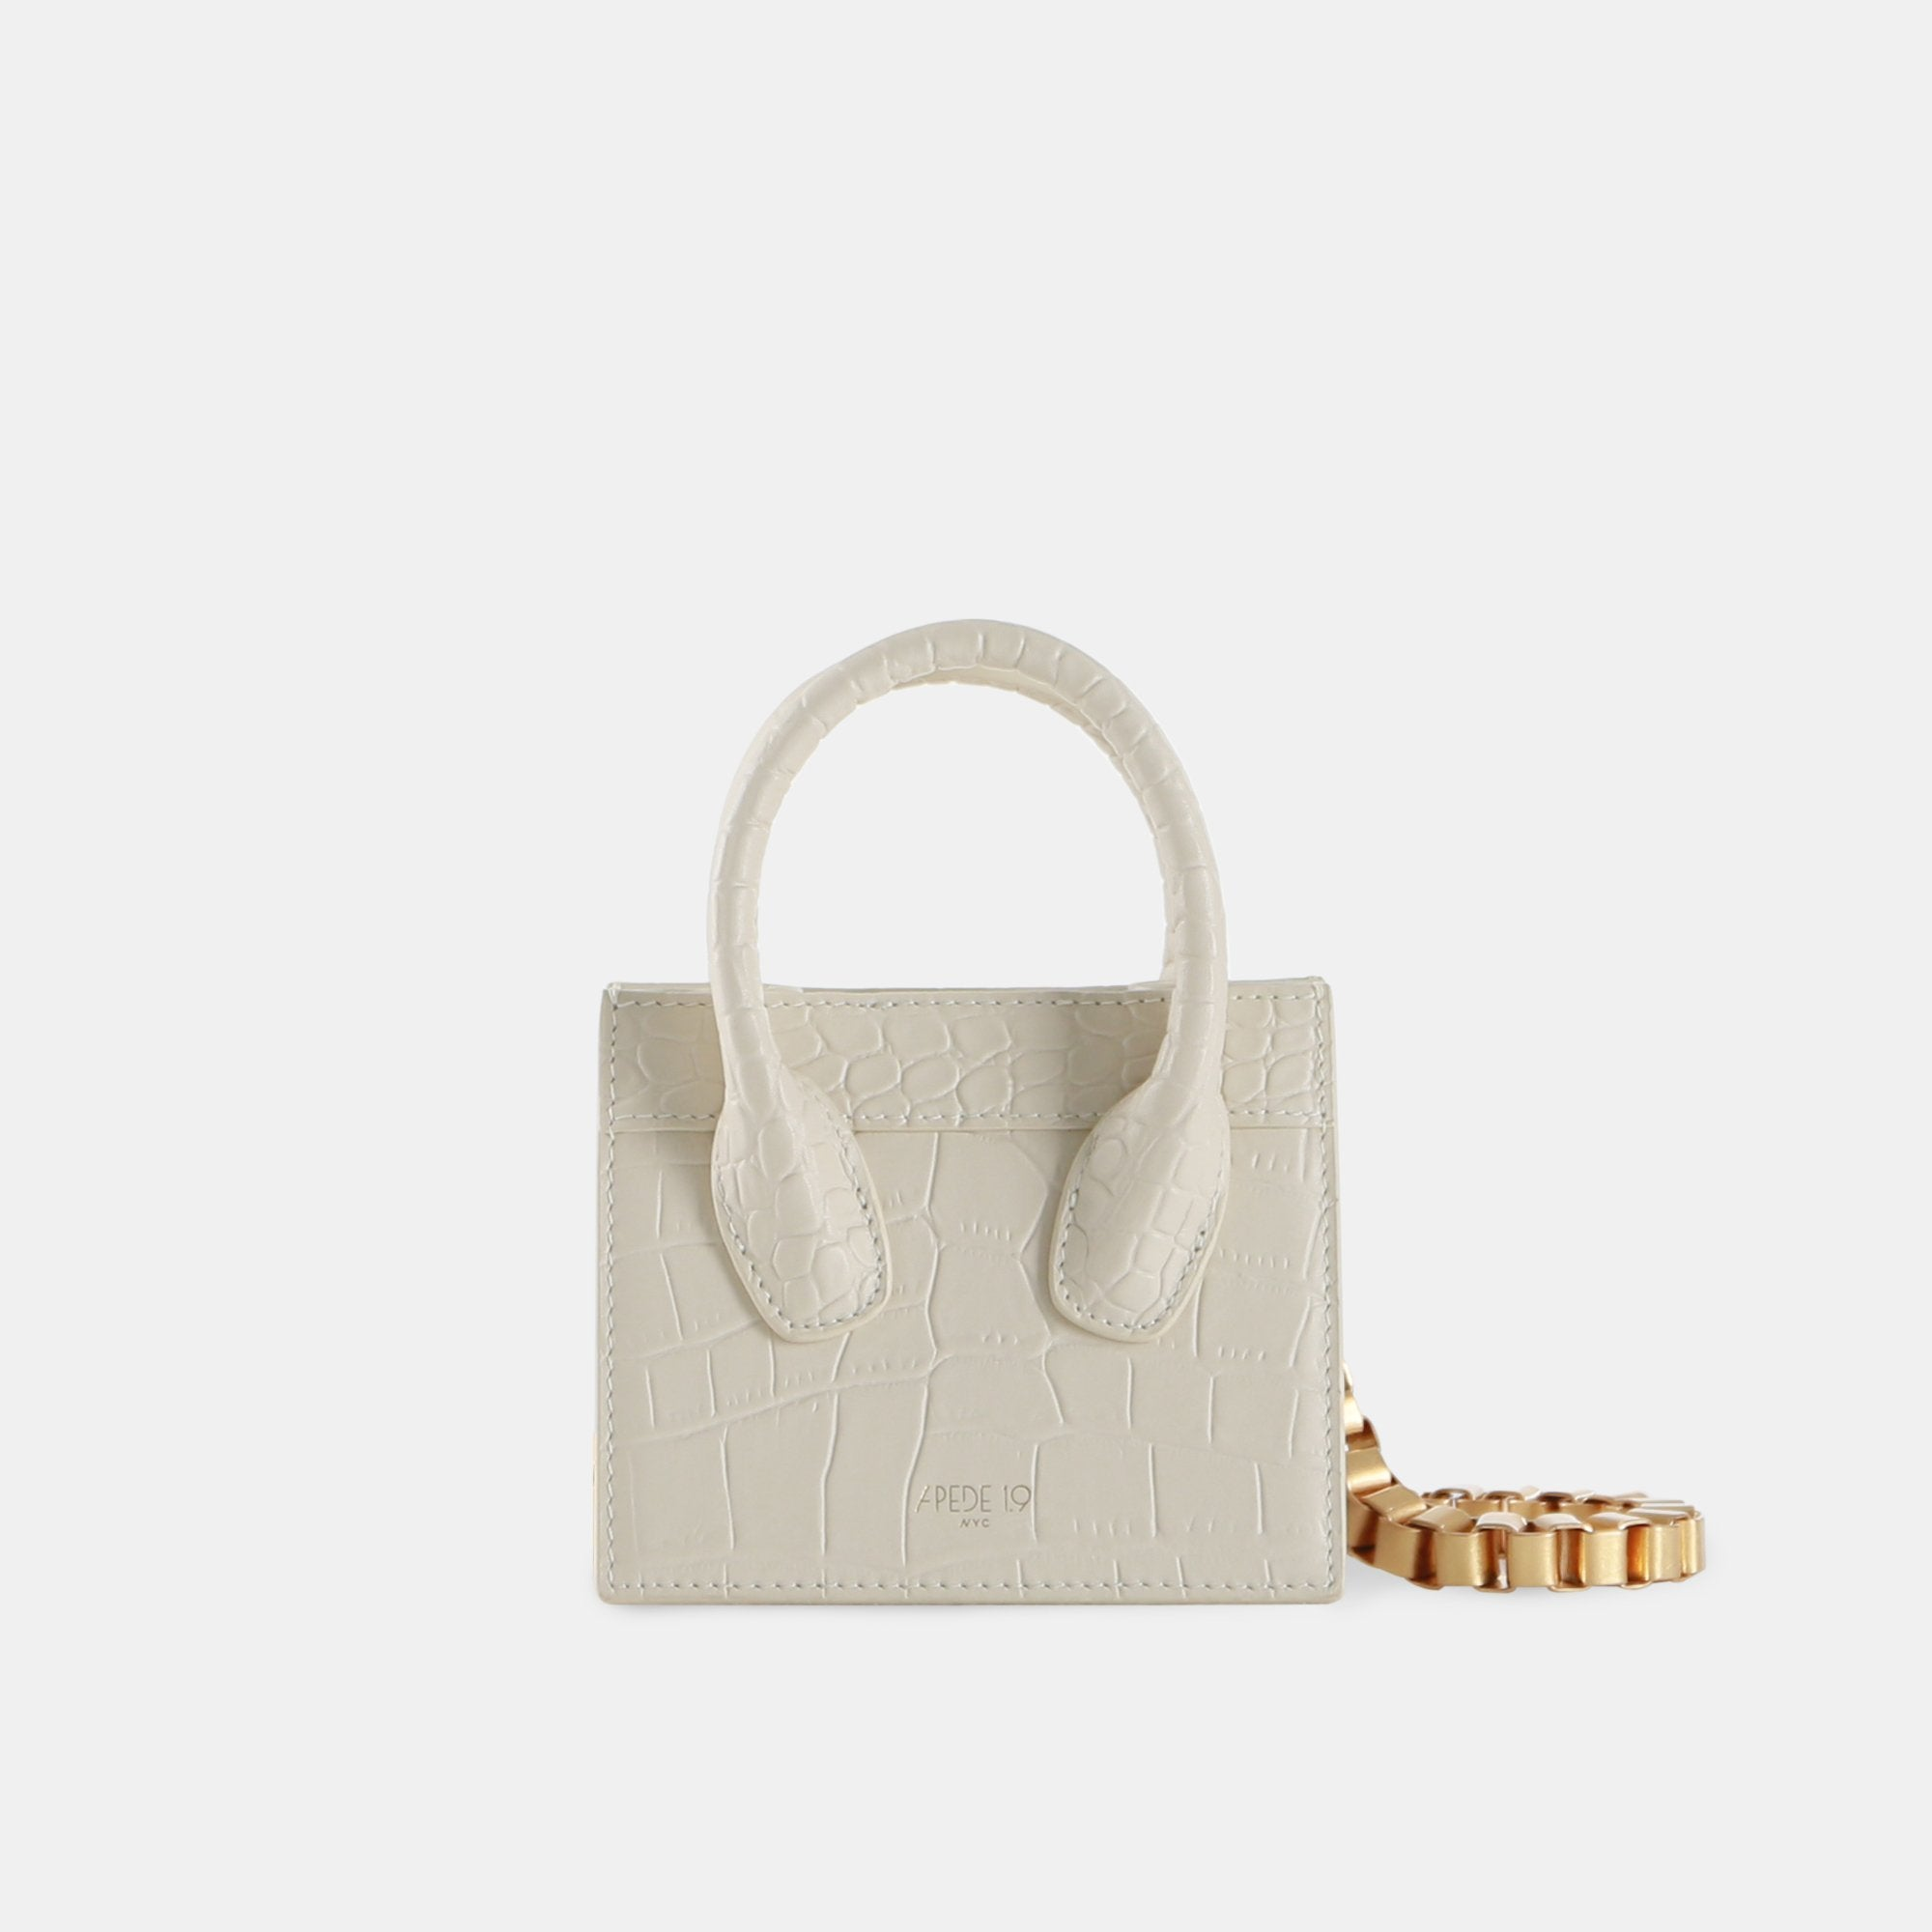 APEDE MOD Cream White Poker Face Mini Tote | MADA IN CHINA